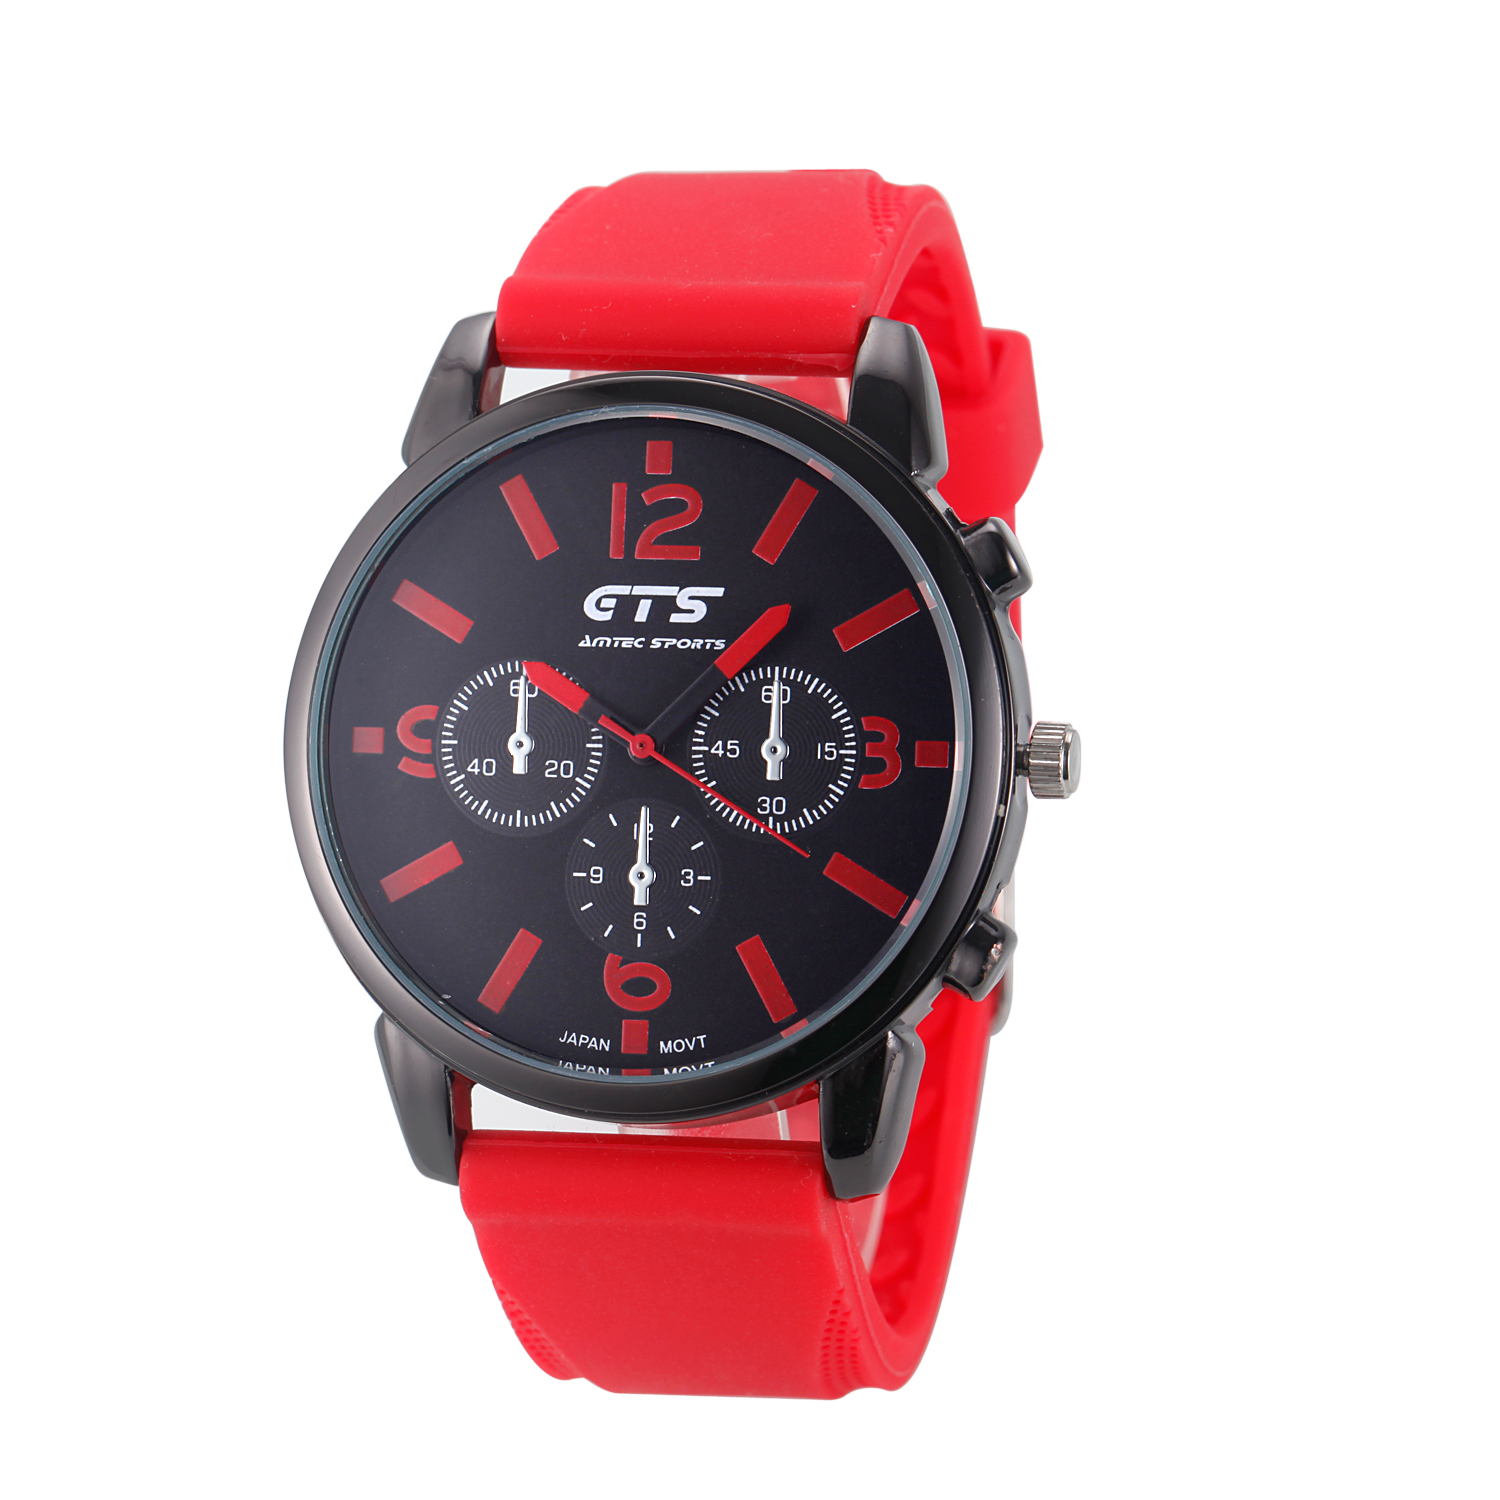 Hot Sale 2017 New  Fashion Design Quartz Watch High Quality Men Woman Silicone Sport Watches Hommes Femmes Montre en silicone free drop shipping 2017 newest europe hot sales fashion brand gt watch high quality men women gifts silicone sports wristwatch